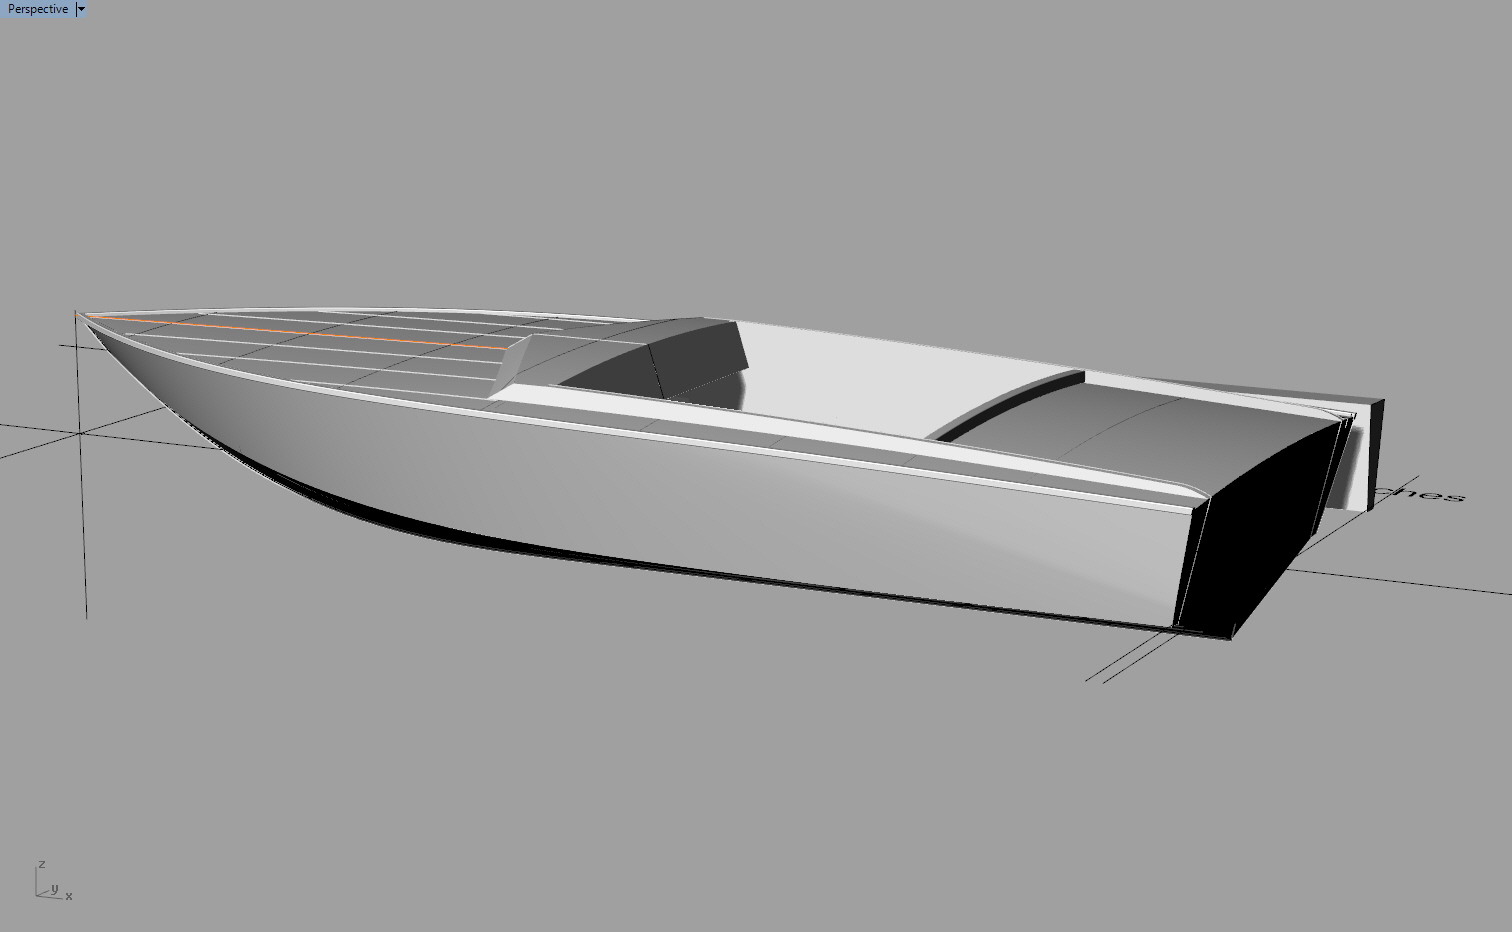 Metal Boat Kits | Premium CNC boat kits in Aluminum Alloy and Steel